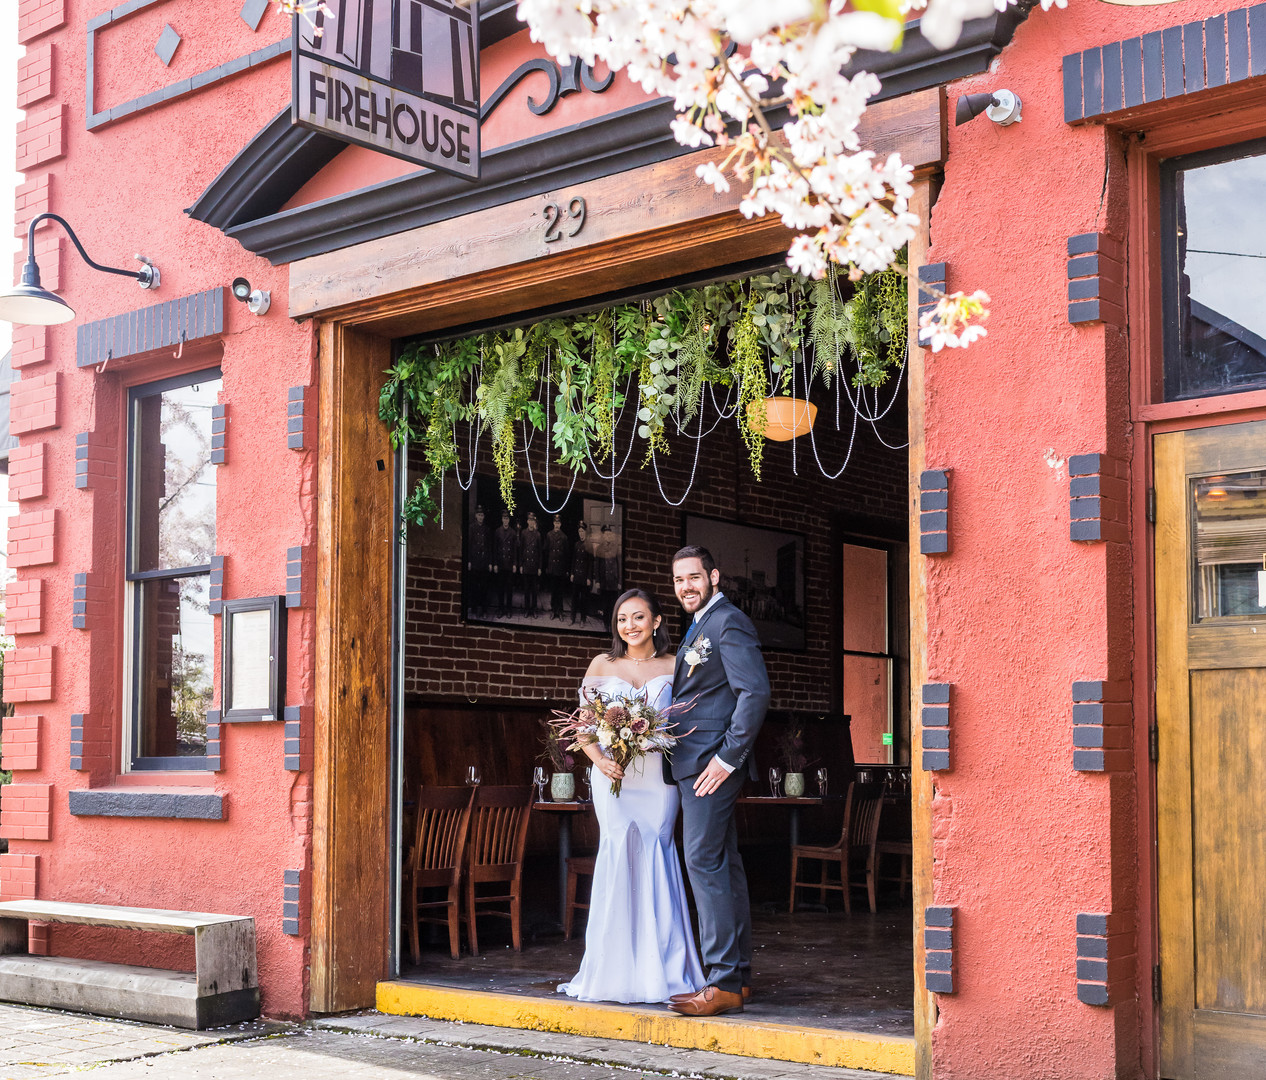 Bride and Groom portrait at Firehouse Restaurant